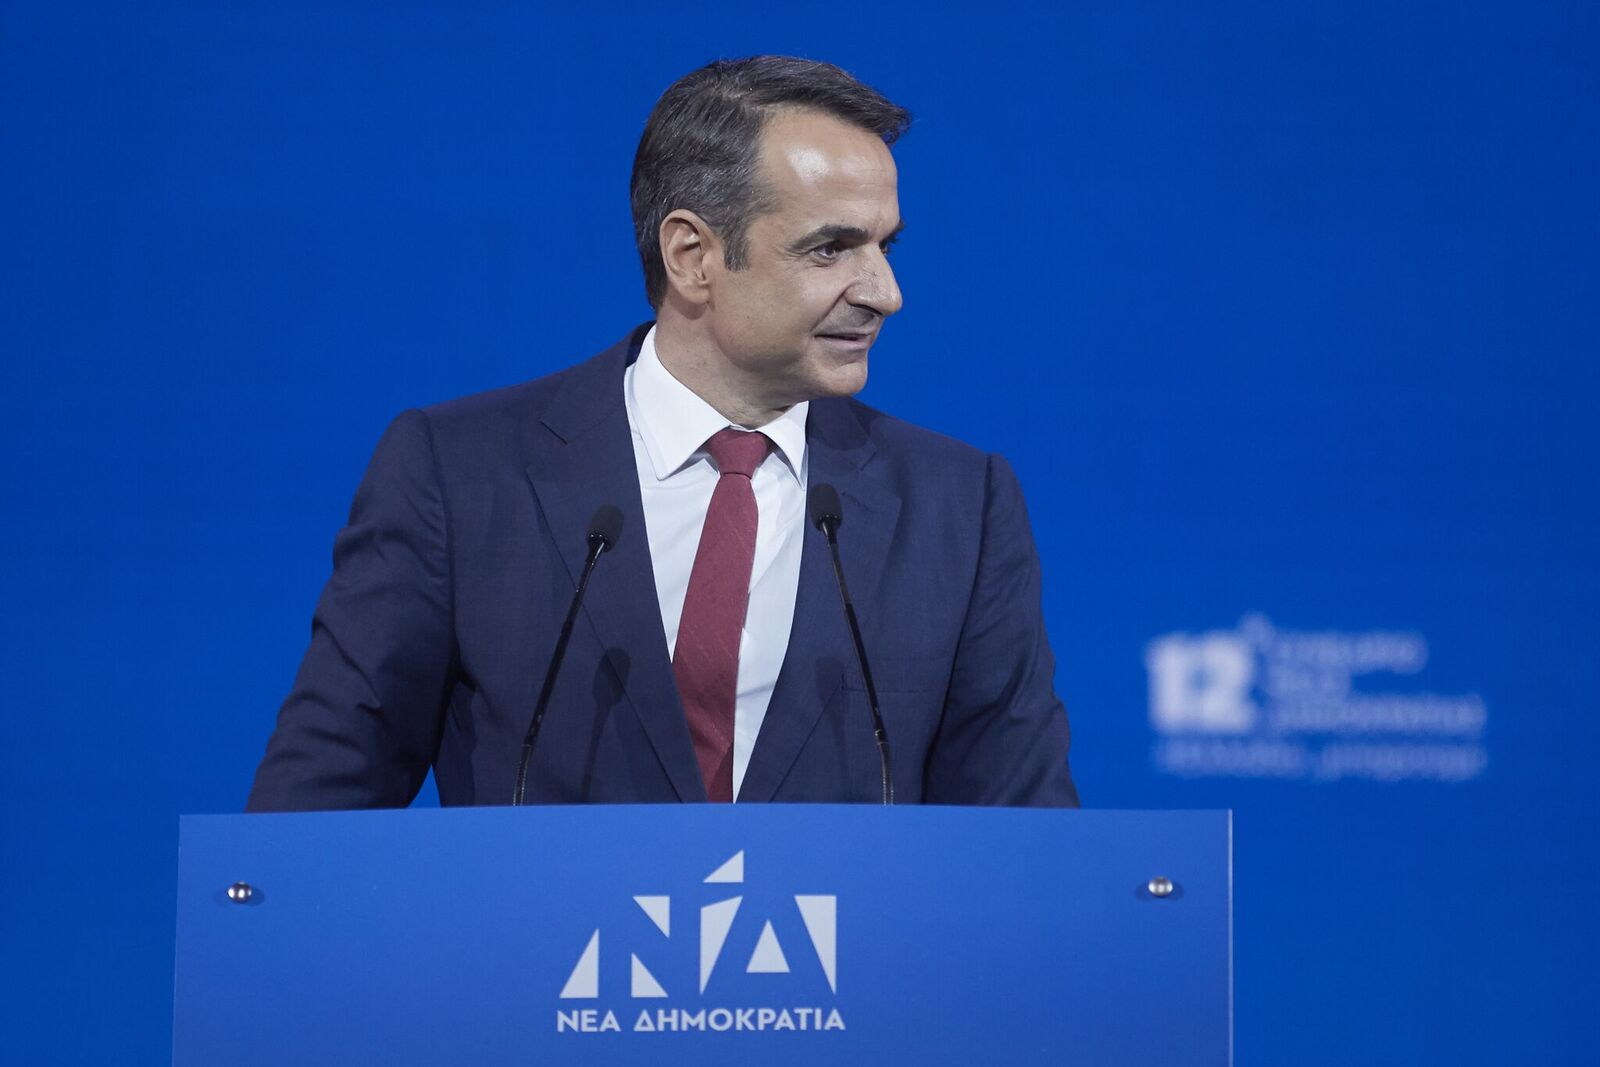 Mitsotakis attacks Tsipras administration in 12th ND party congress speech